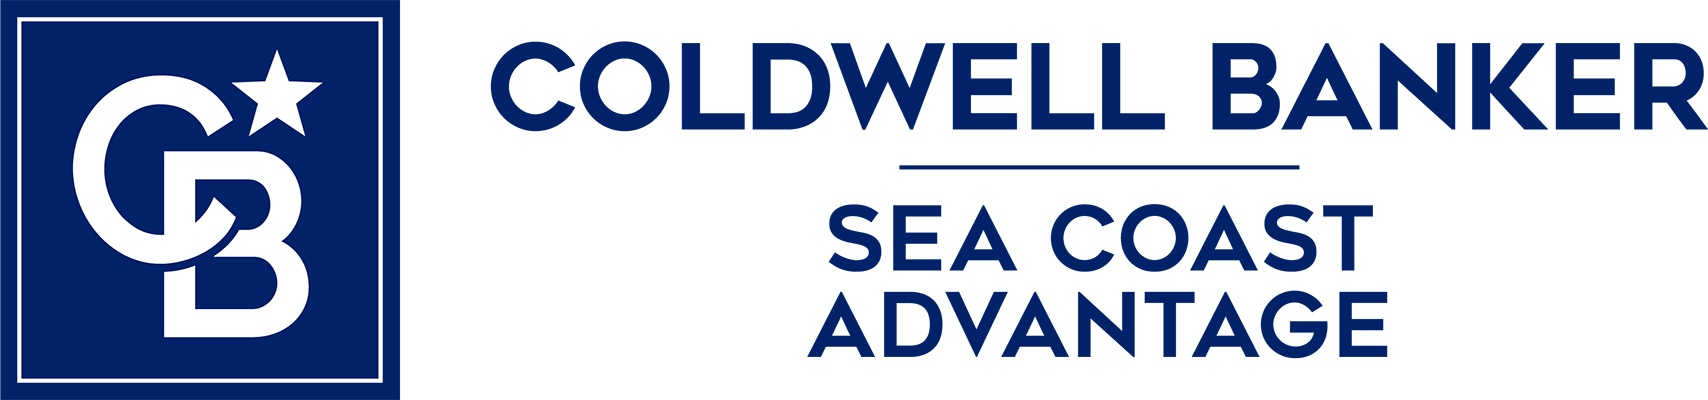 Carolyn Byrnes - Coldwell Banker Sea Coast Advantage Realty Logo